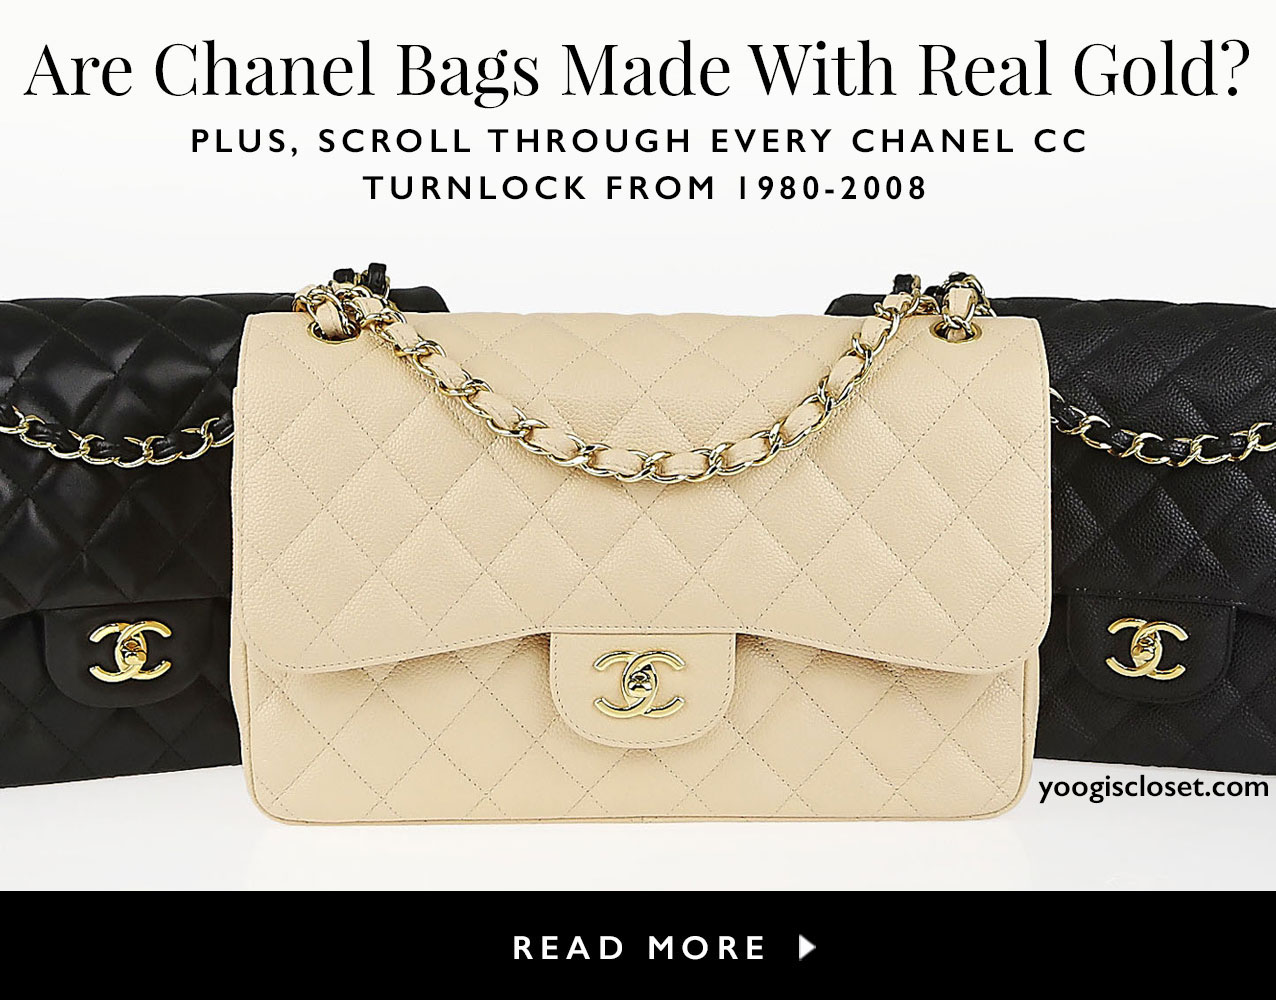 4c262a9247ae Are Authentic Chanel Bags Made With Real Good? Find Out on YoogisCloset.com